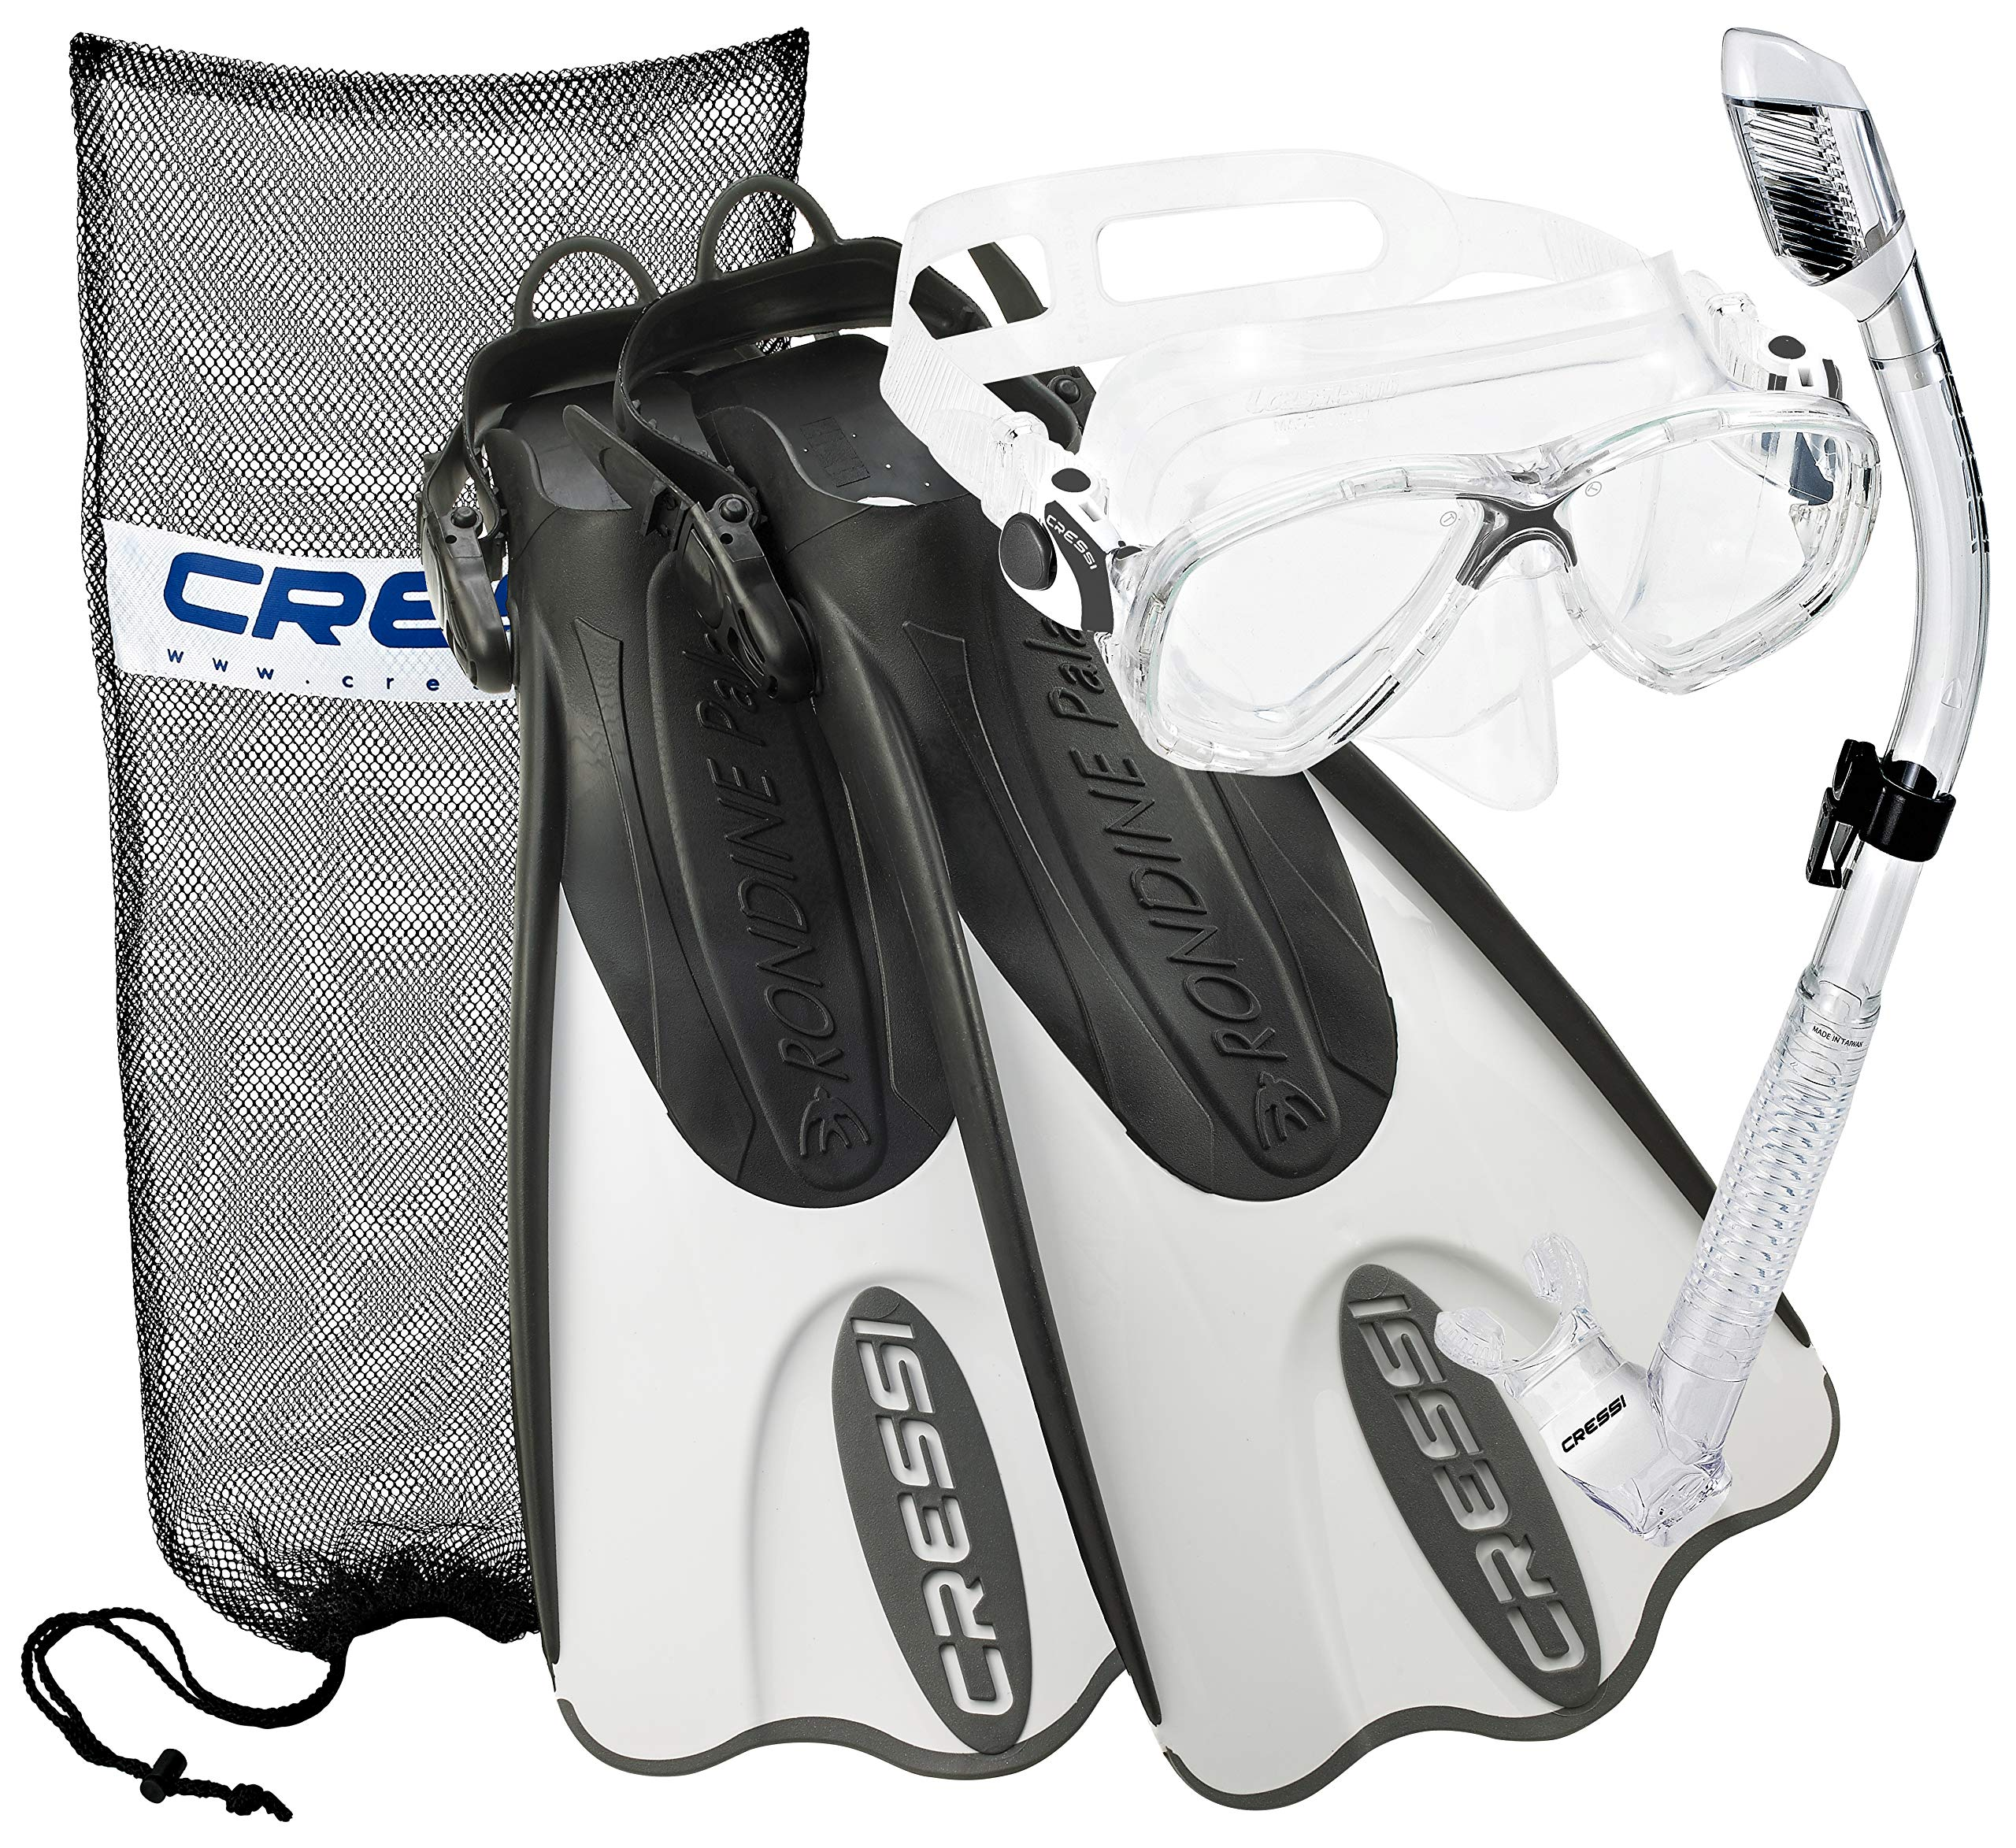 Cressi Palau Mask Fin Snorkel Set with Snorkeling Gear Bag, Designed and Manufactured in Italy (Black White, S/M | (Mens 4-7) (Womens 5-8)) by Cressi